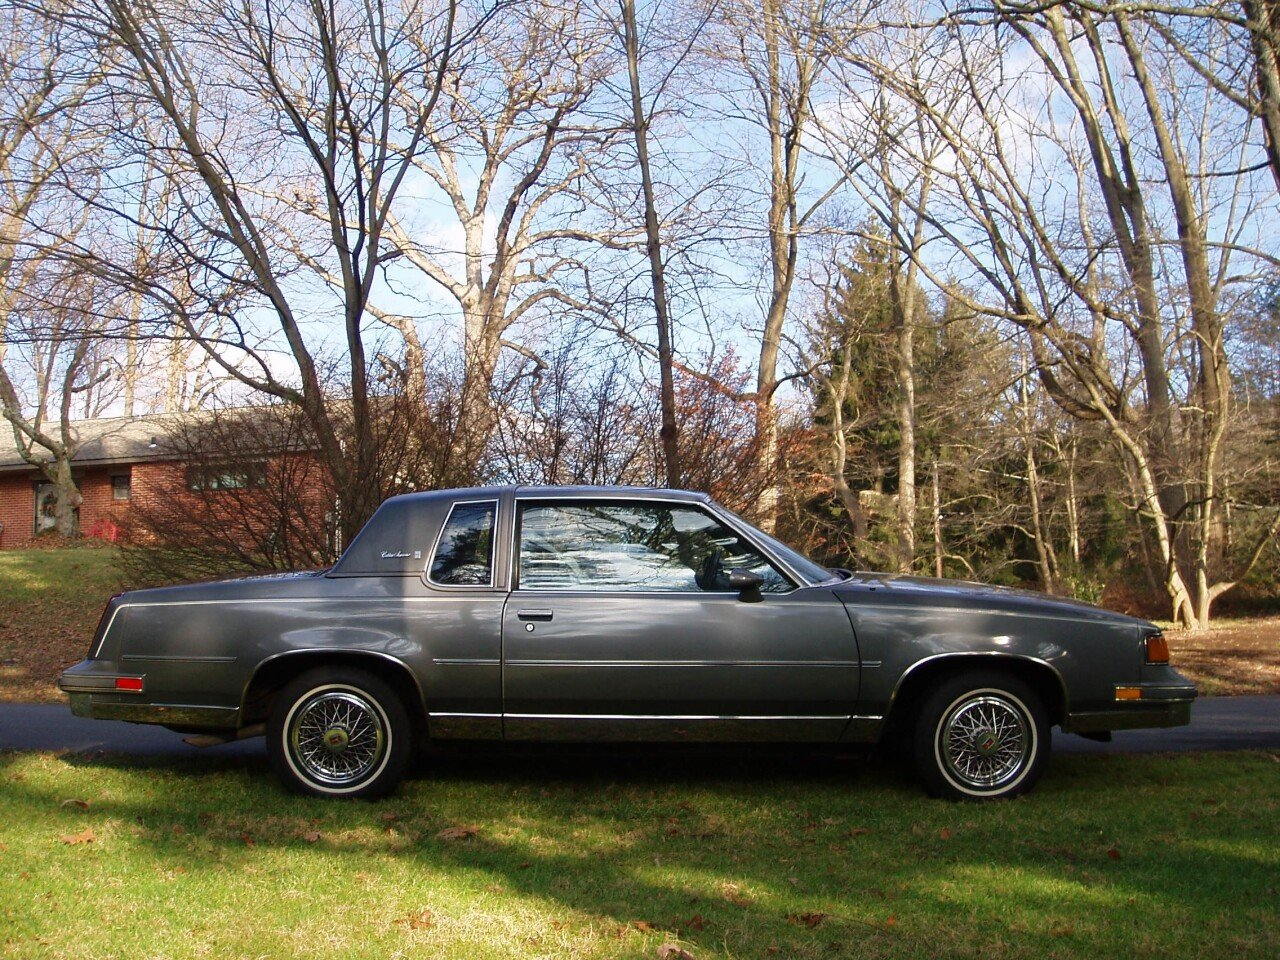 Used Police Cars For Sale In Pa >> 1987 Oldsmobile Cutlass Supreme Brougham Coupe for sale near langhorne, Pennsylvania 19063 ...